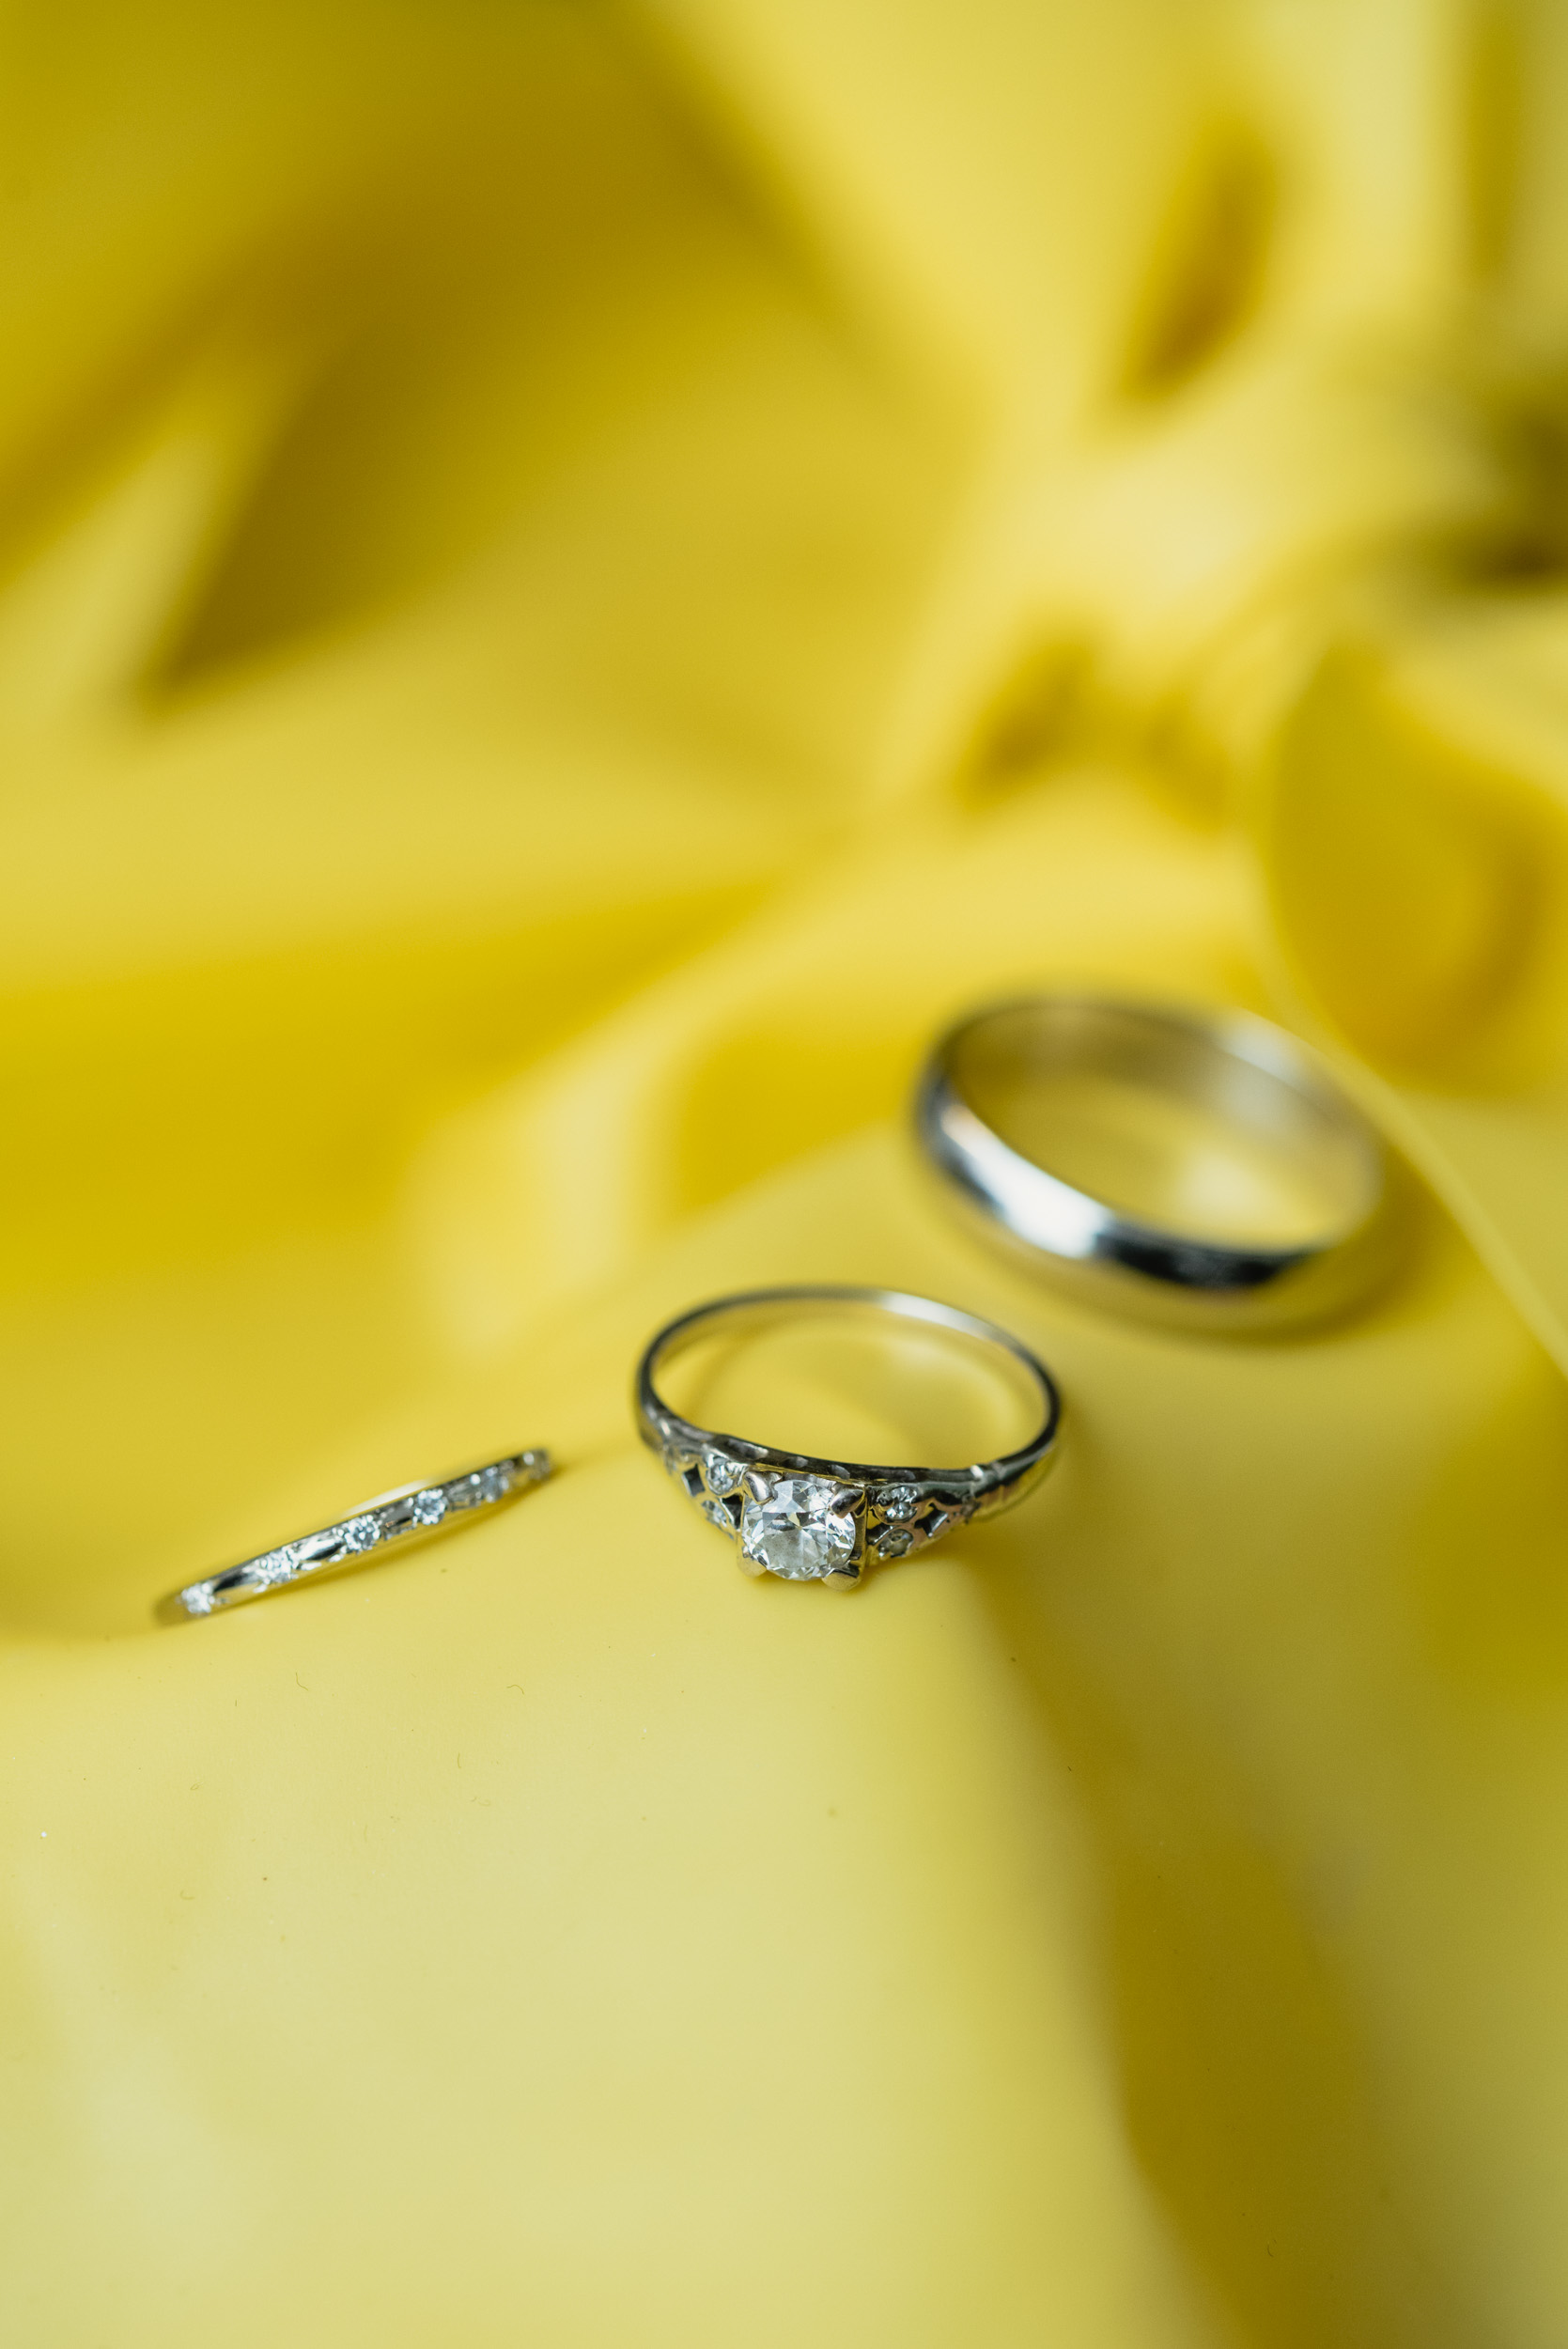 Wedding rings on yellow background